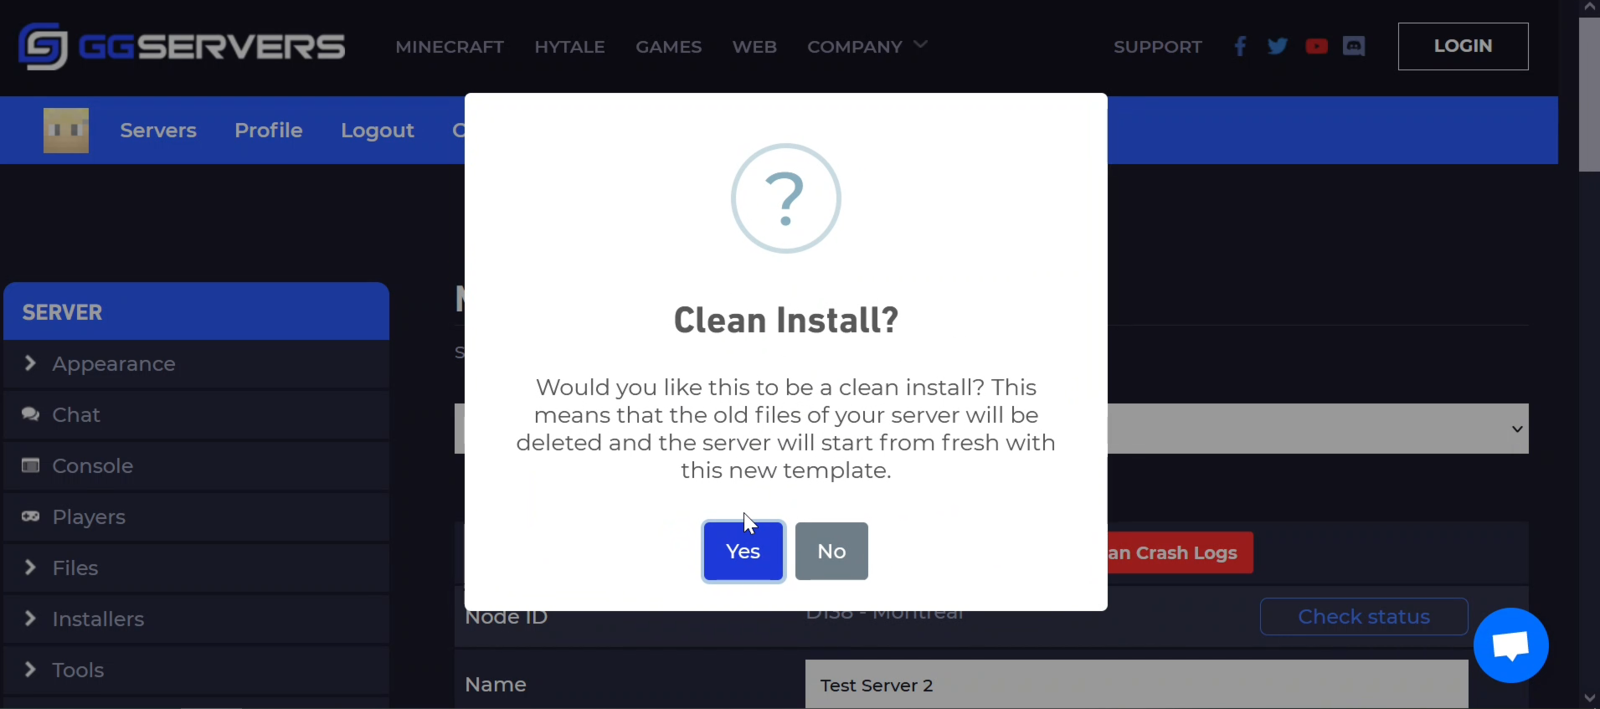 Do you want to do a clean install?